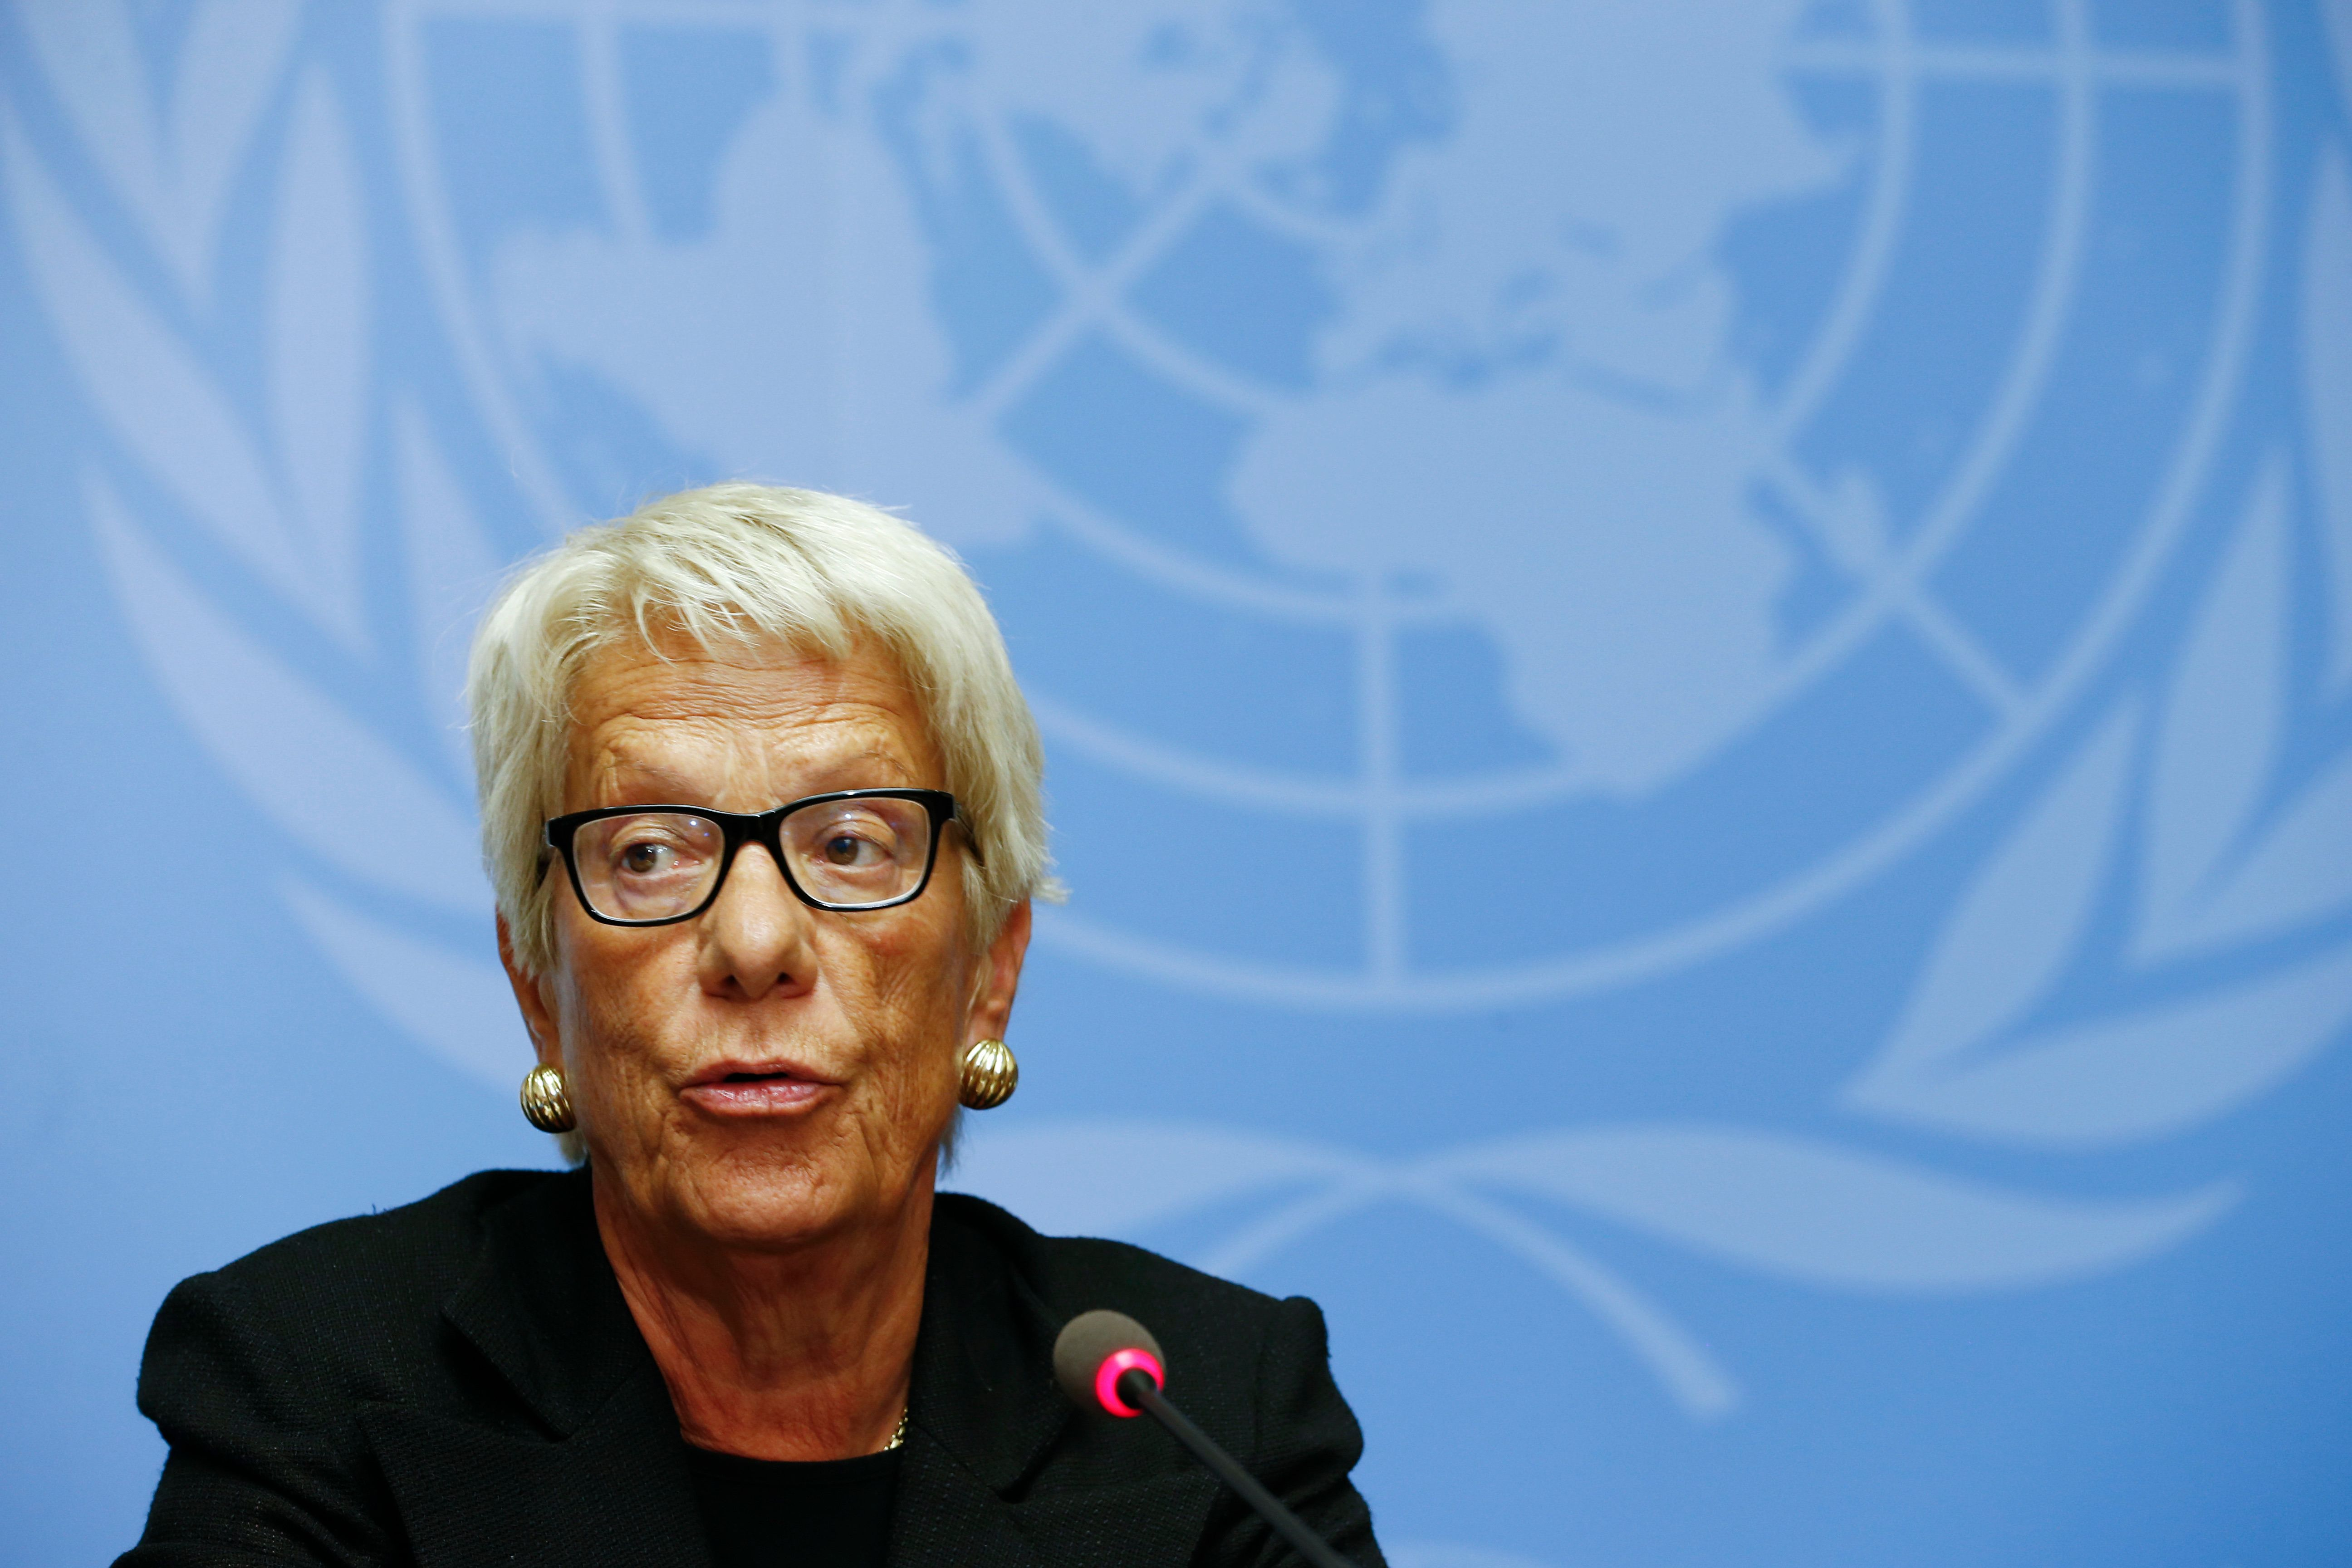 Carla del Ponte addresses the media during a press conference at the U.N. in June